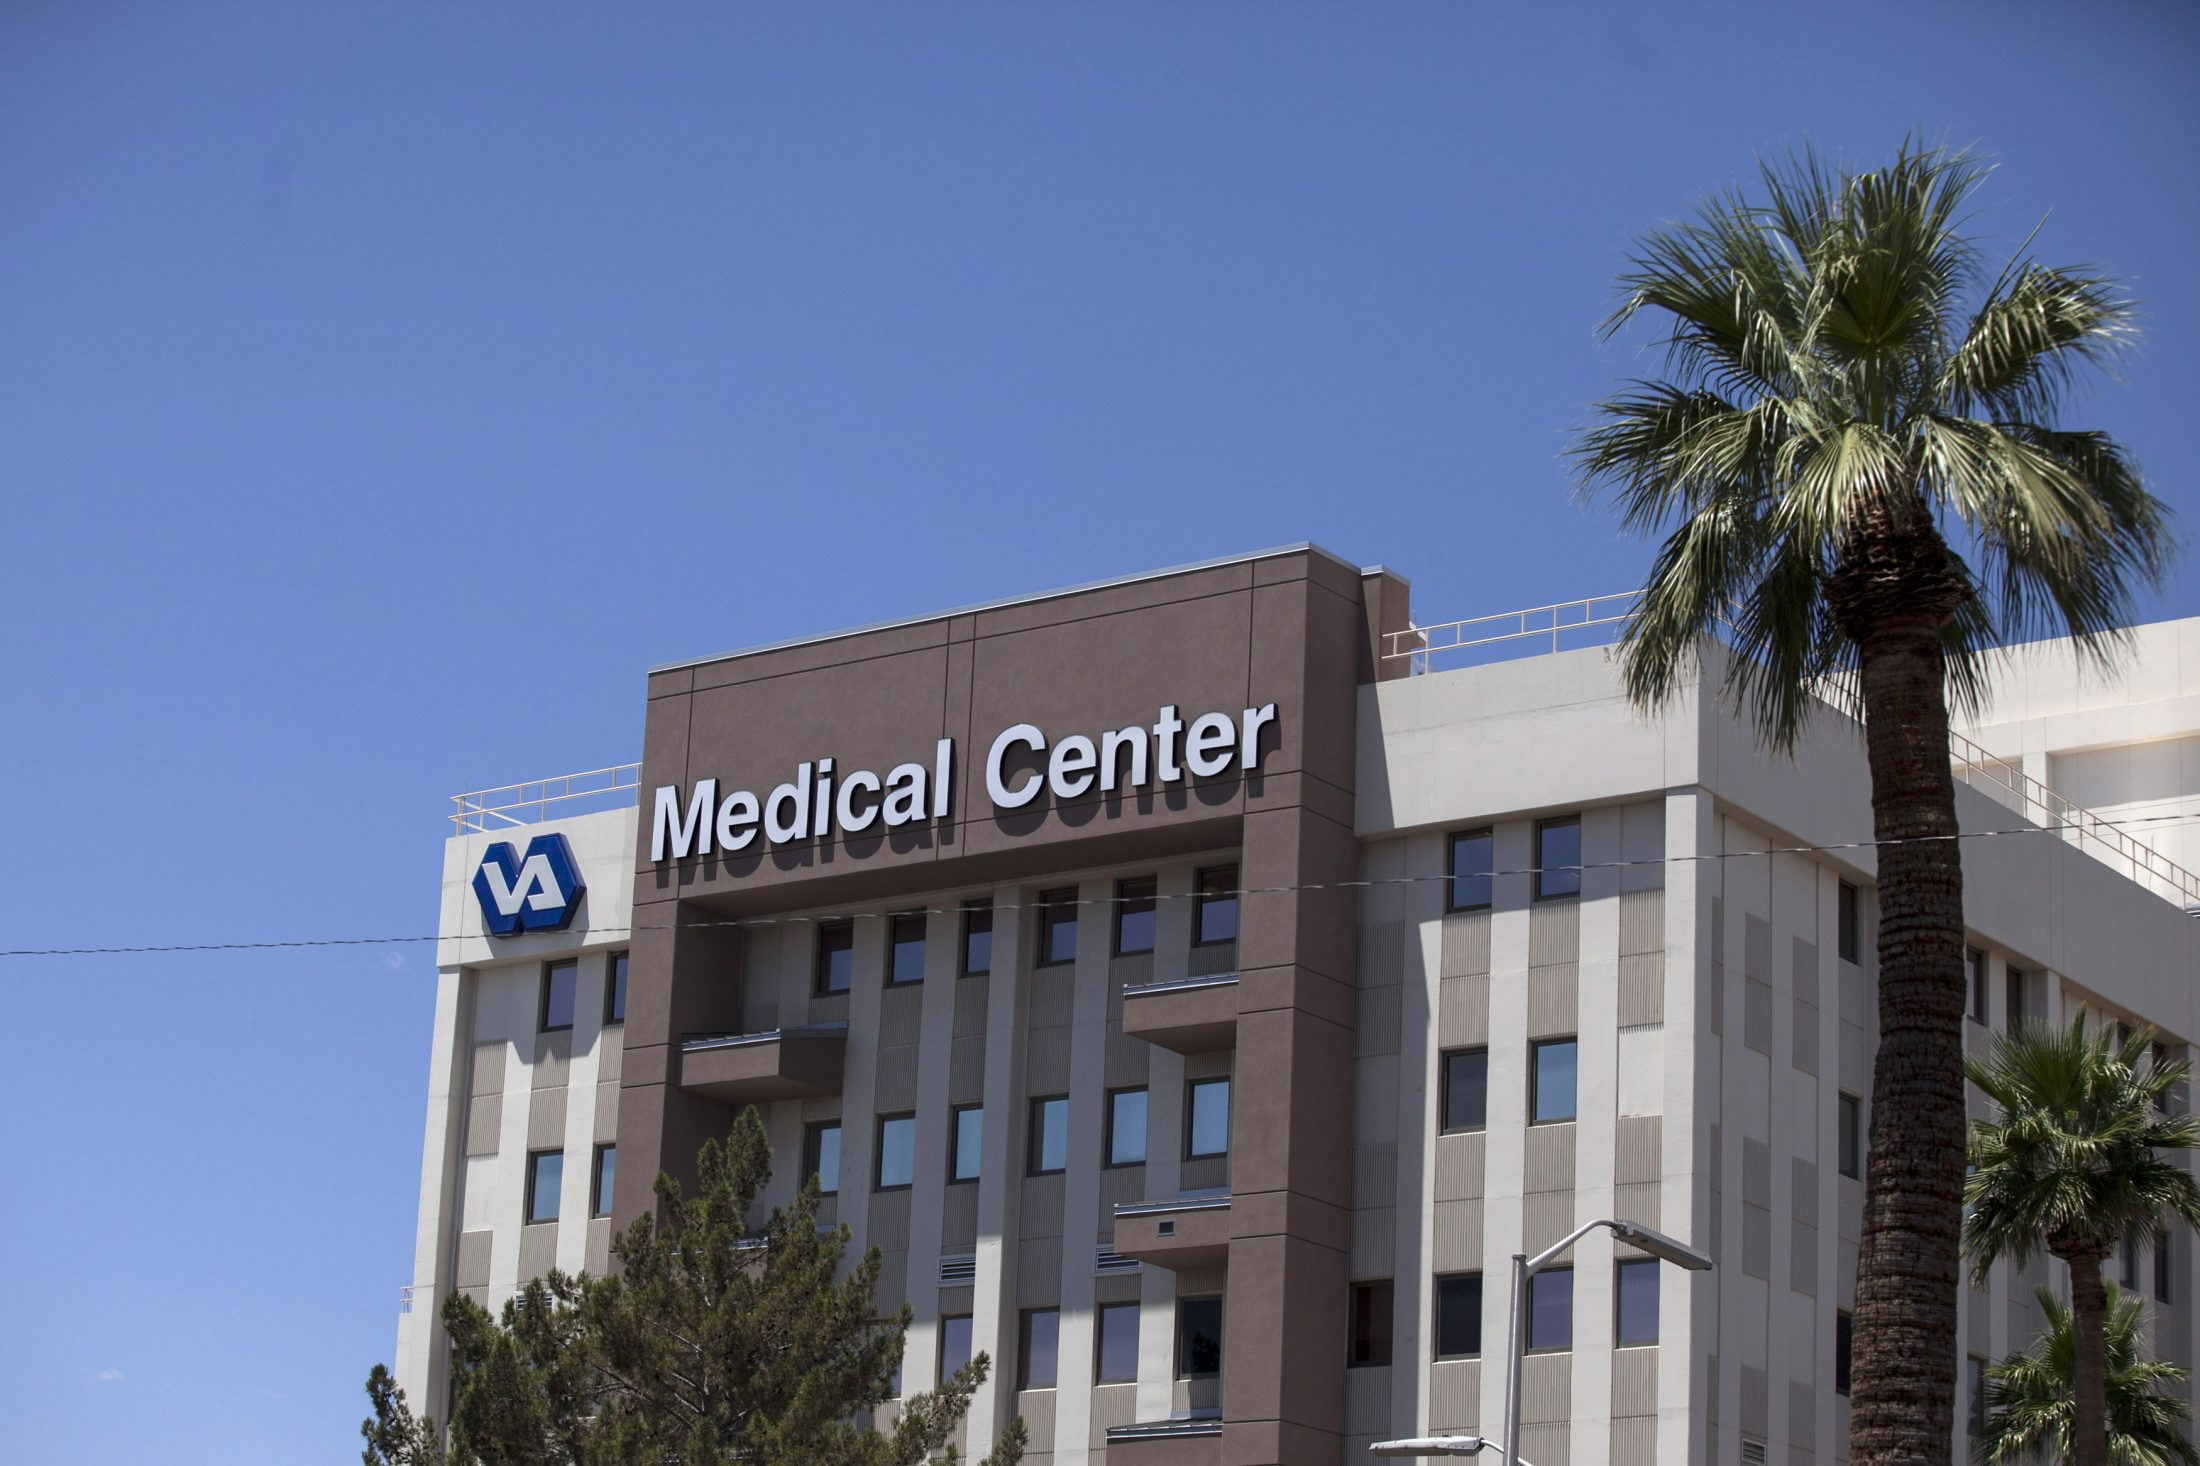 The Carl T. Hayden VA Medical Center is pictured in Phoenix, Arizona. Photo by Samantha Sais/Reuters